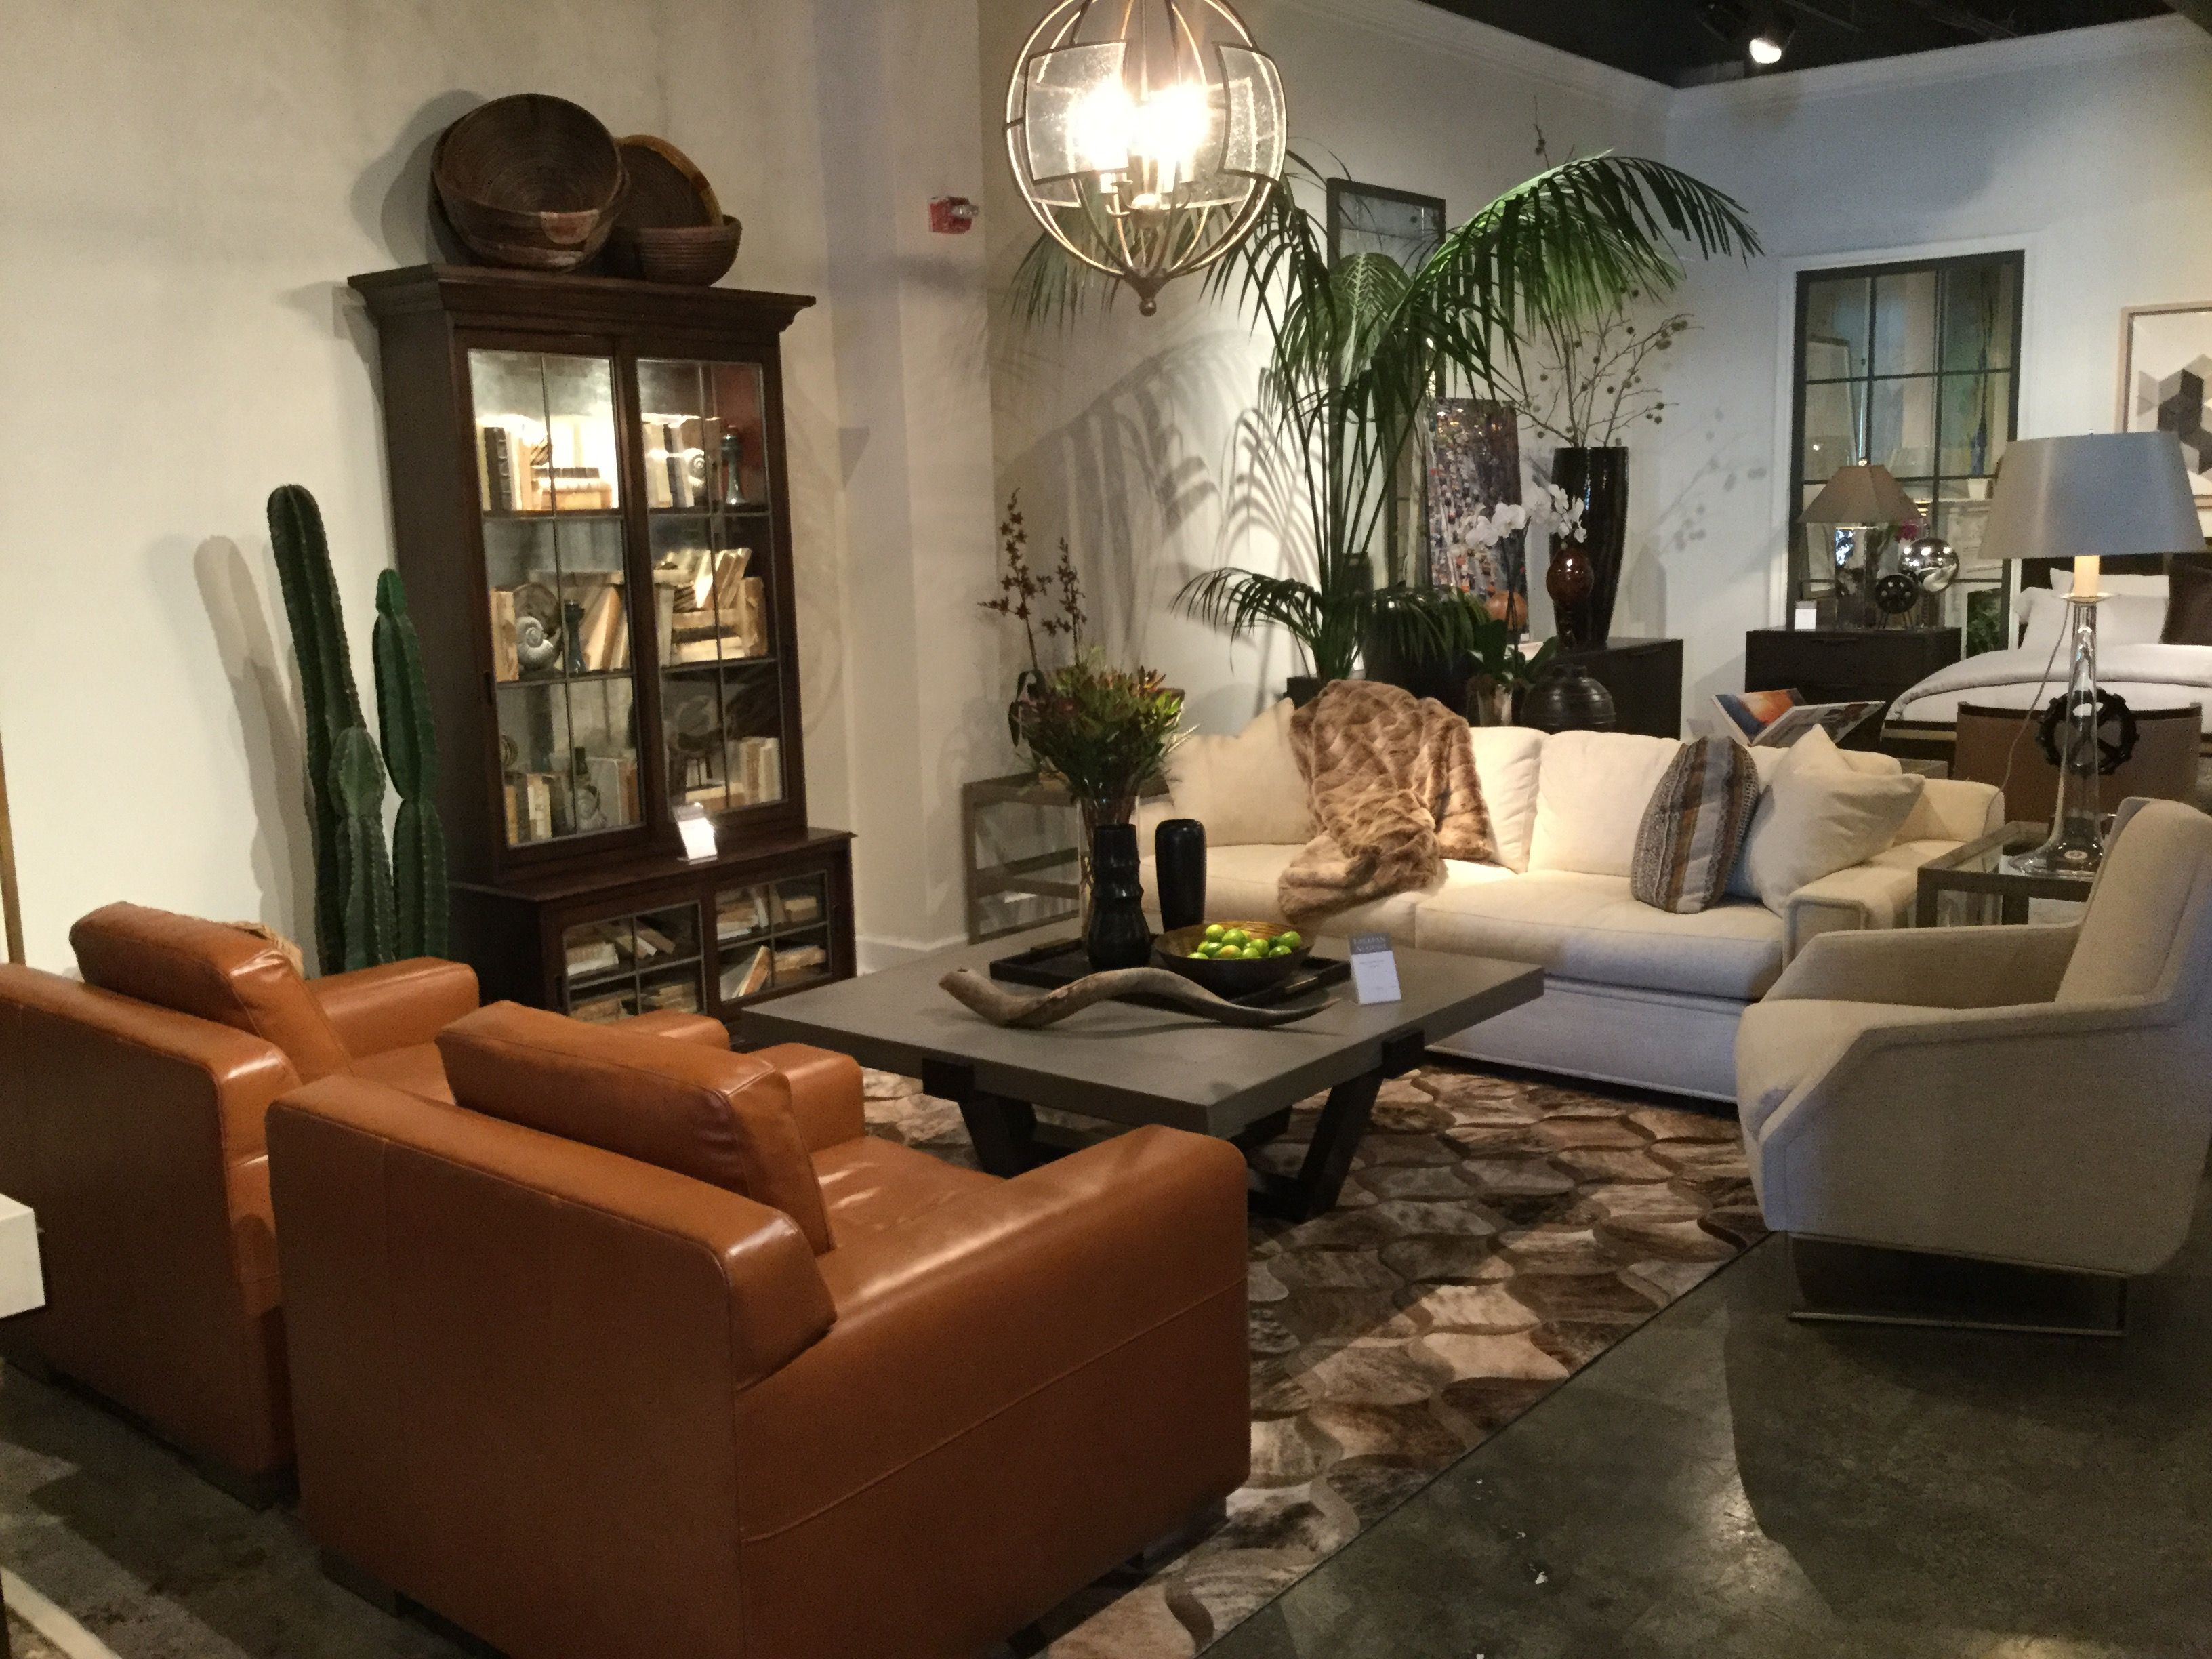 More Great Finds From High Point Market The World S Home For Furnishings We Loved This Beautifully Staged Living Room With Hand Crafted And